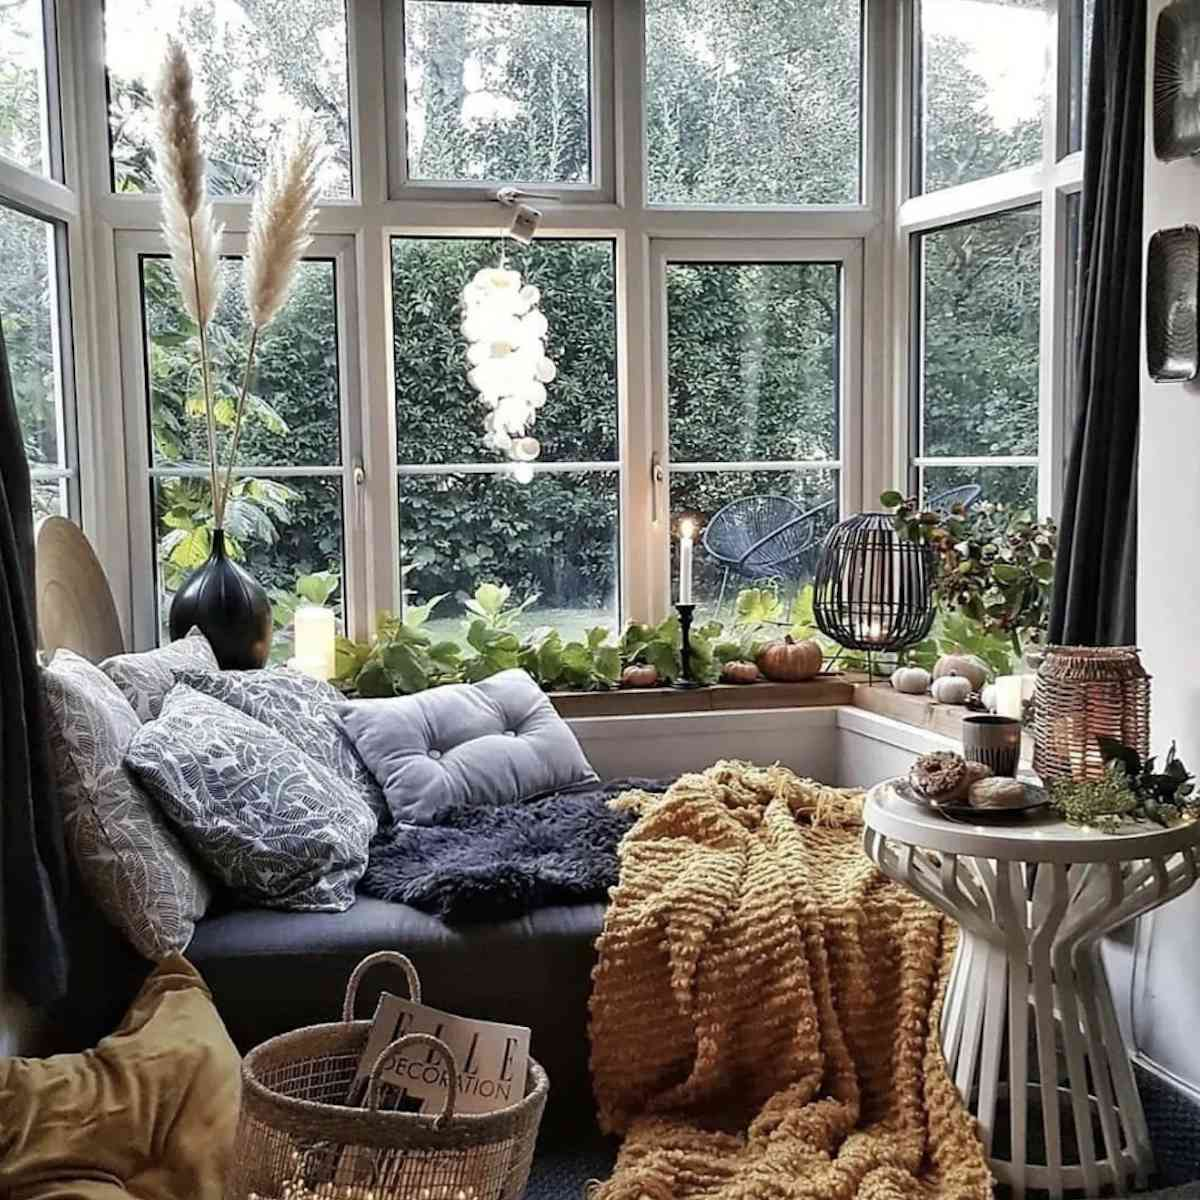 nook created in corner with view and small pumpkins on windowsill